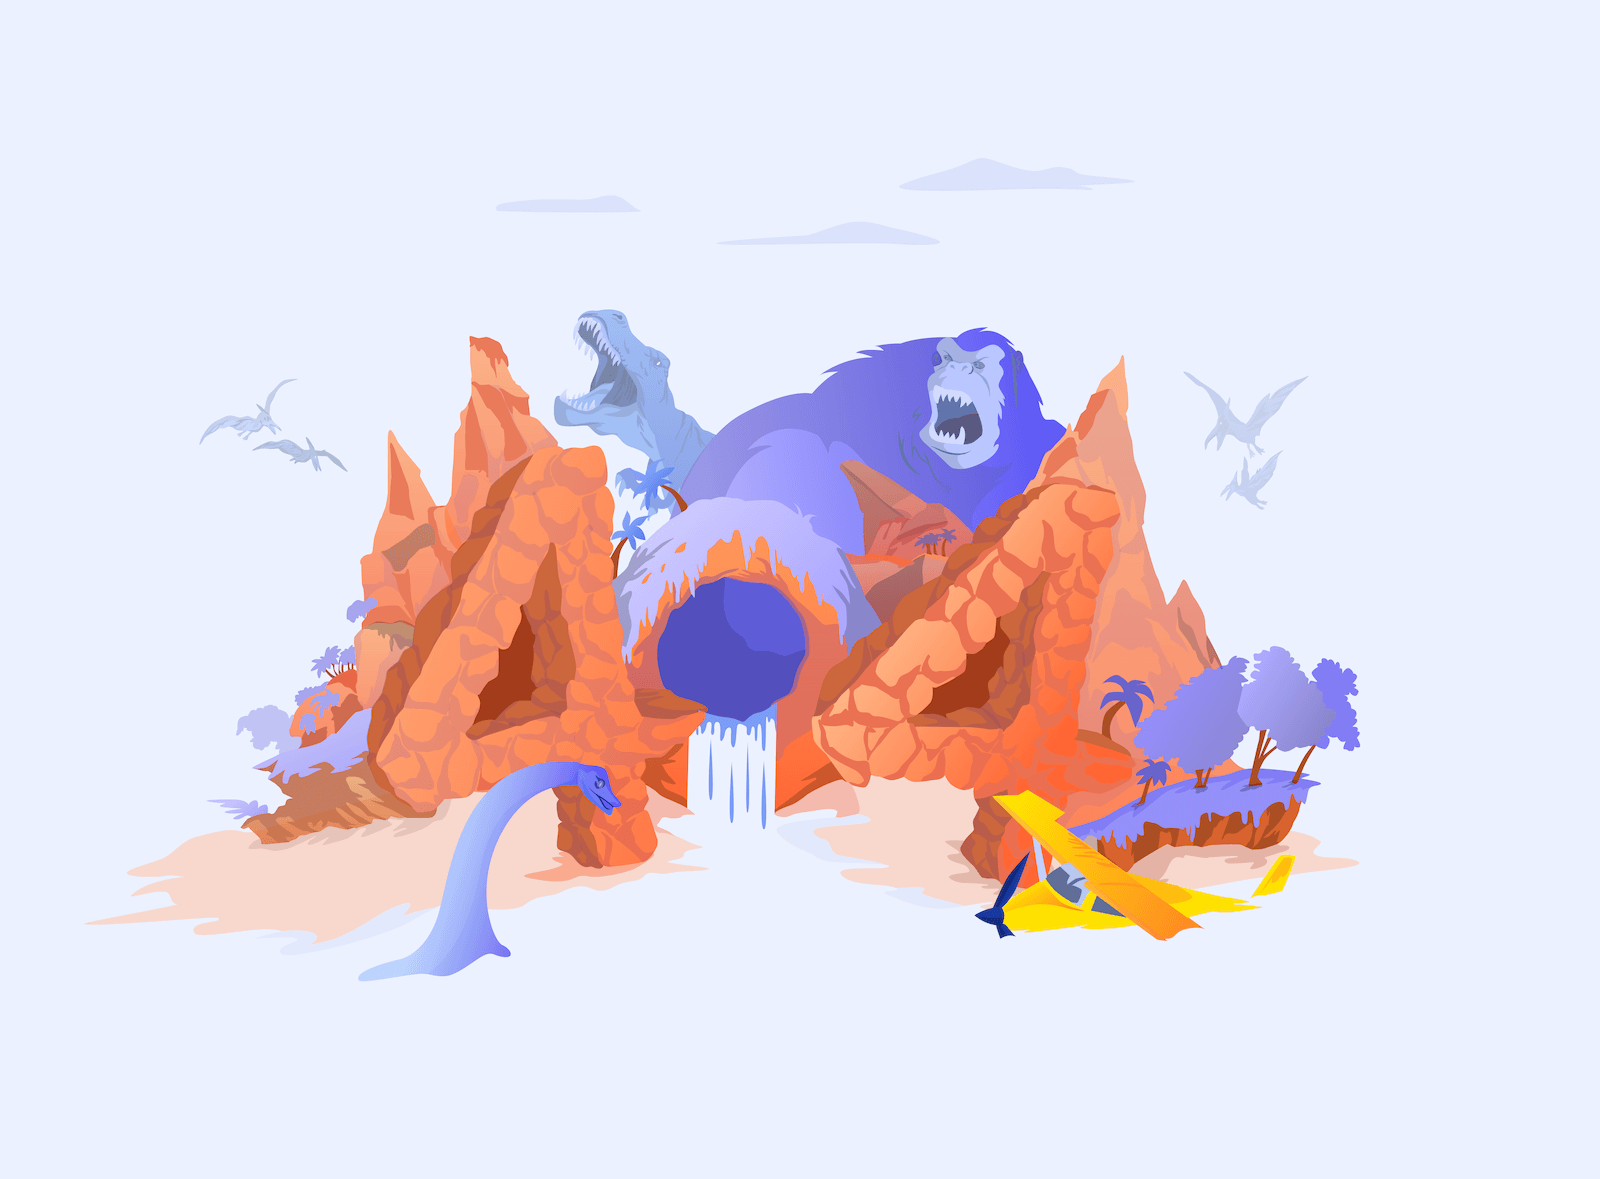 Image for the 404 page, which shows some dinosaurs and a gorilla.